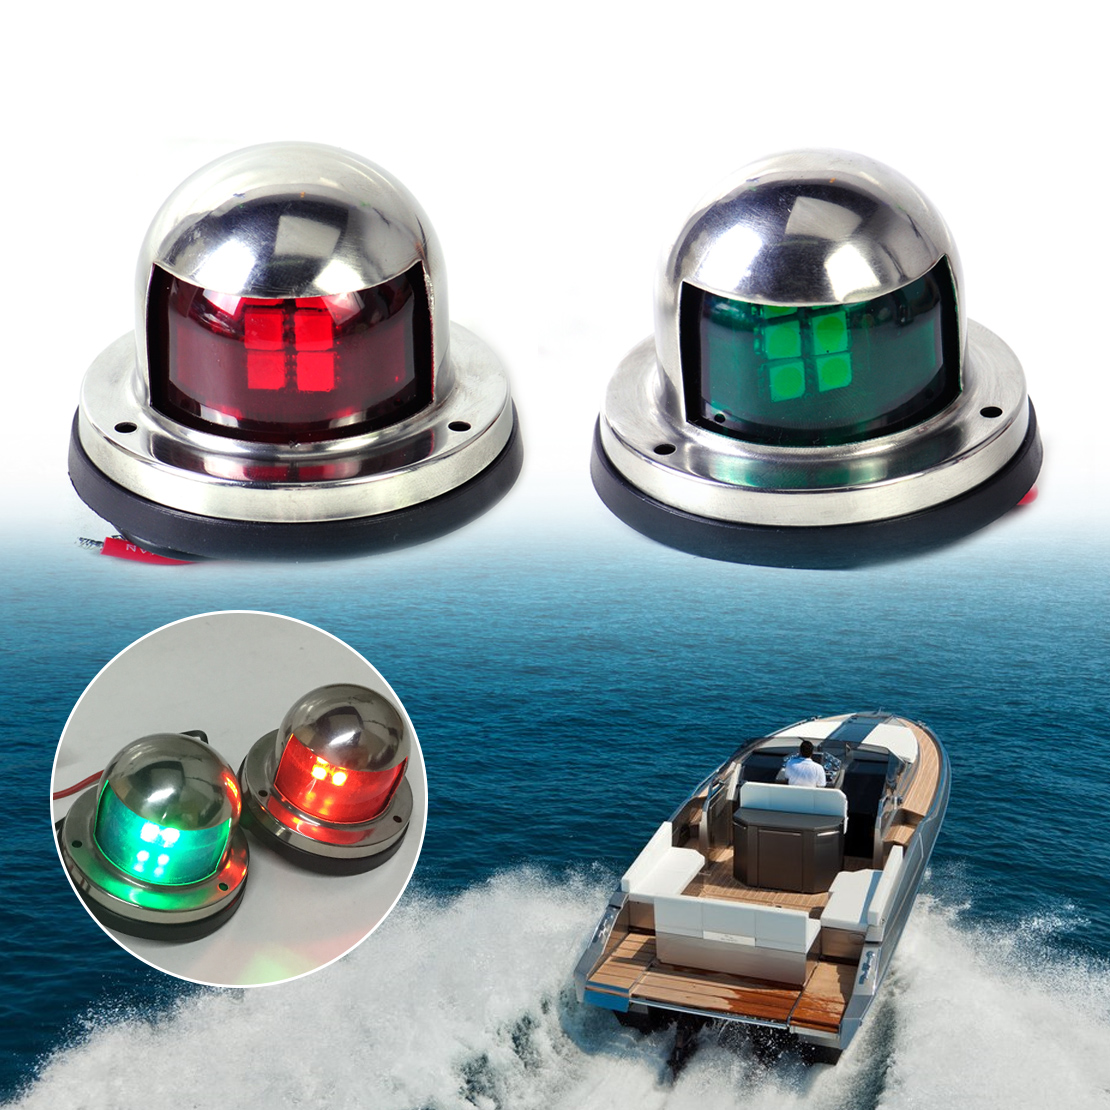 DWCX 1 Pair 12V LED Bulb Bow Stainless Steel Navigation Light Red Green Sailing Signal Light Fit for <font><b>Marine</b></font> Boat Yacht